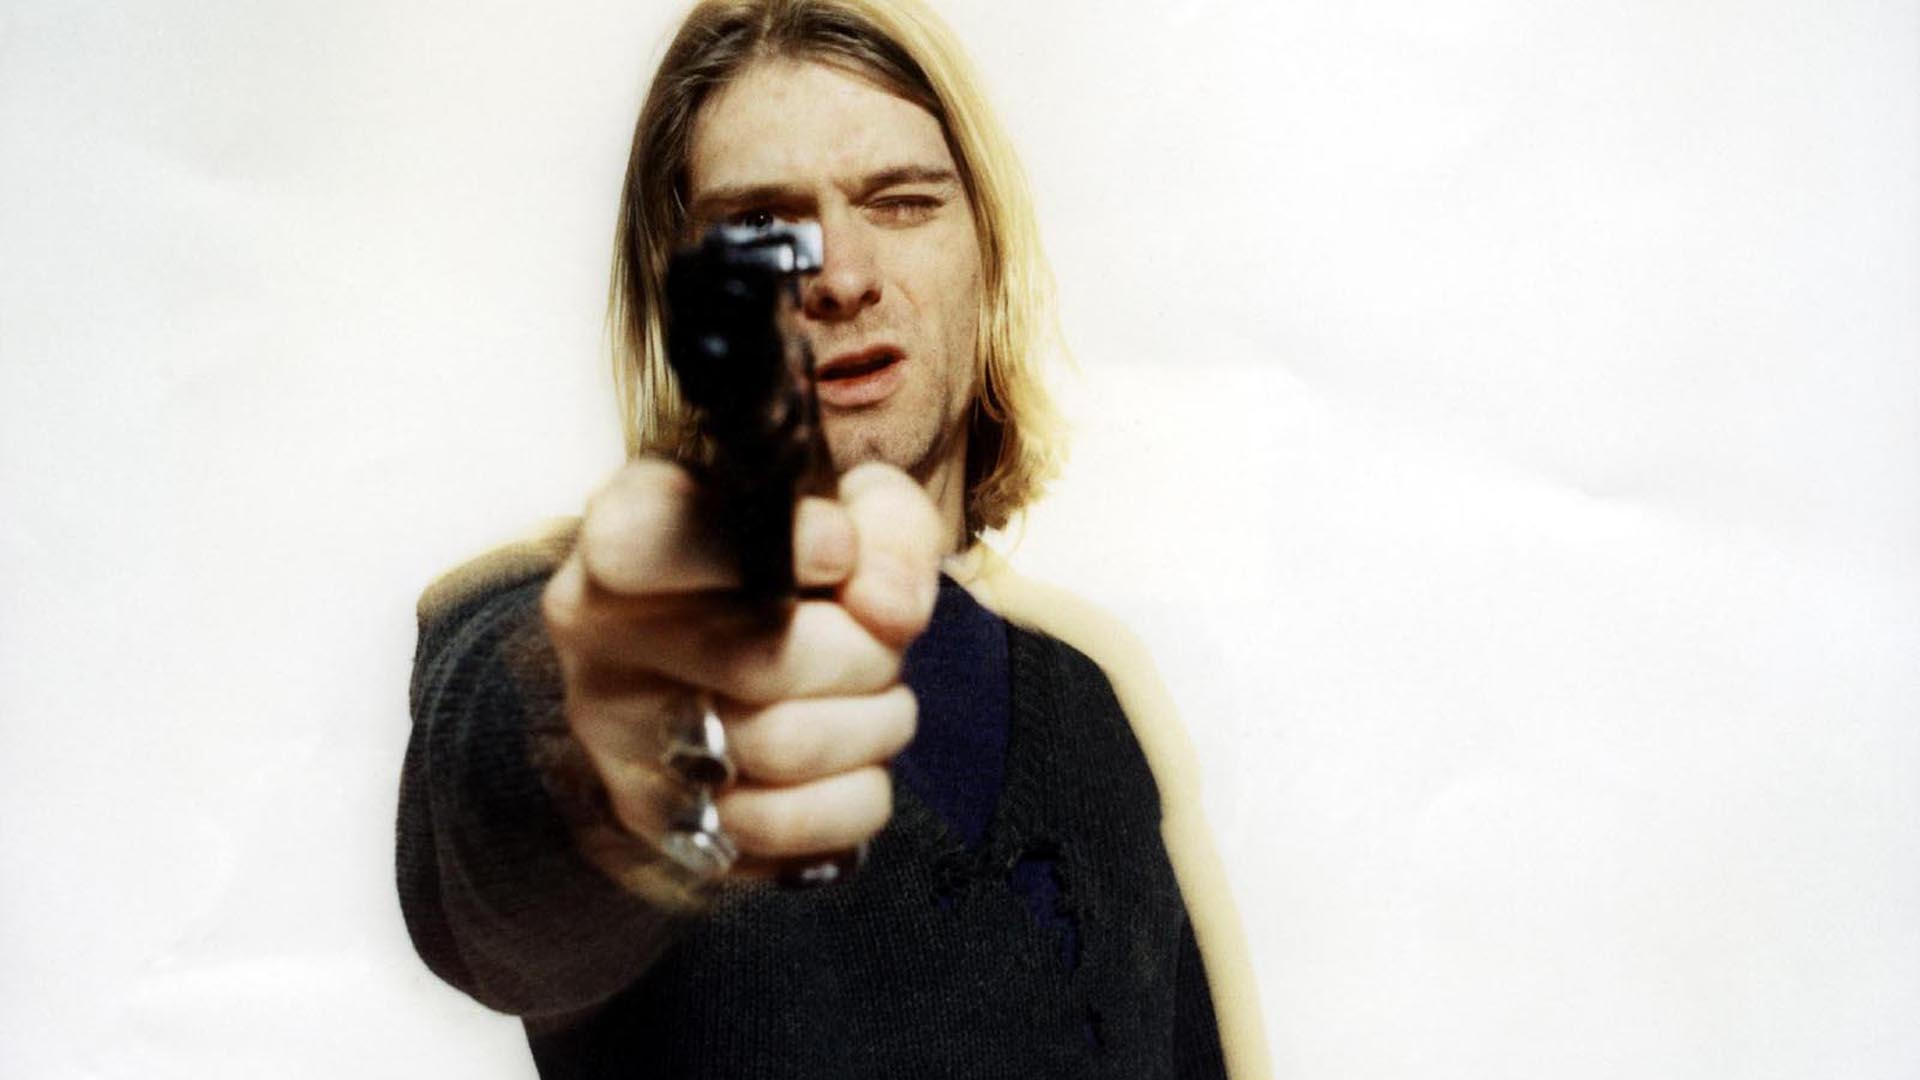 Kurt Cobain Wallpapers HD Wallpapers Early 1920x1080